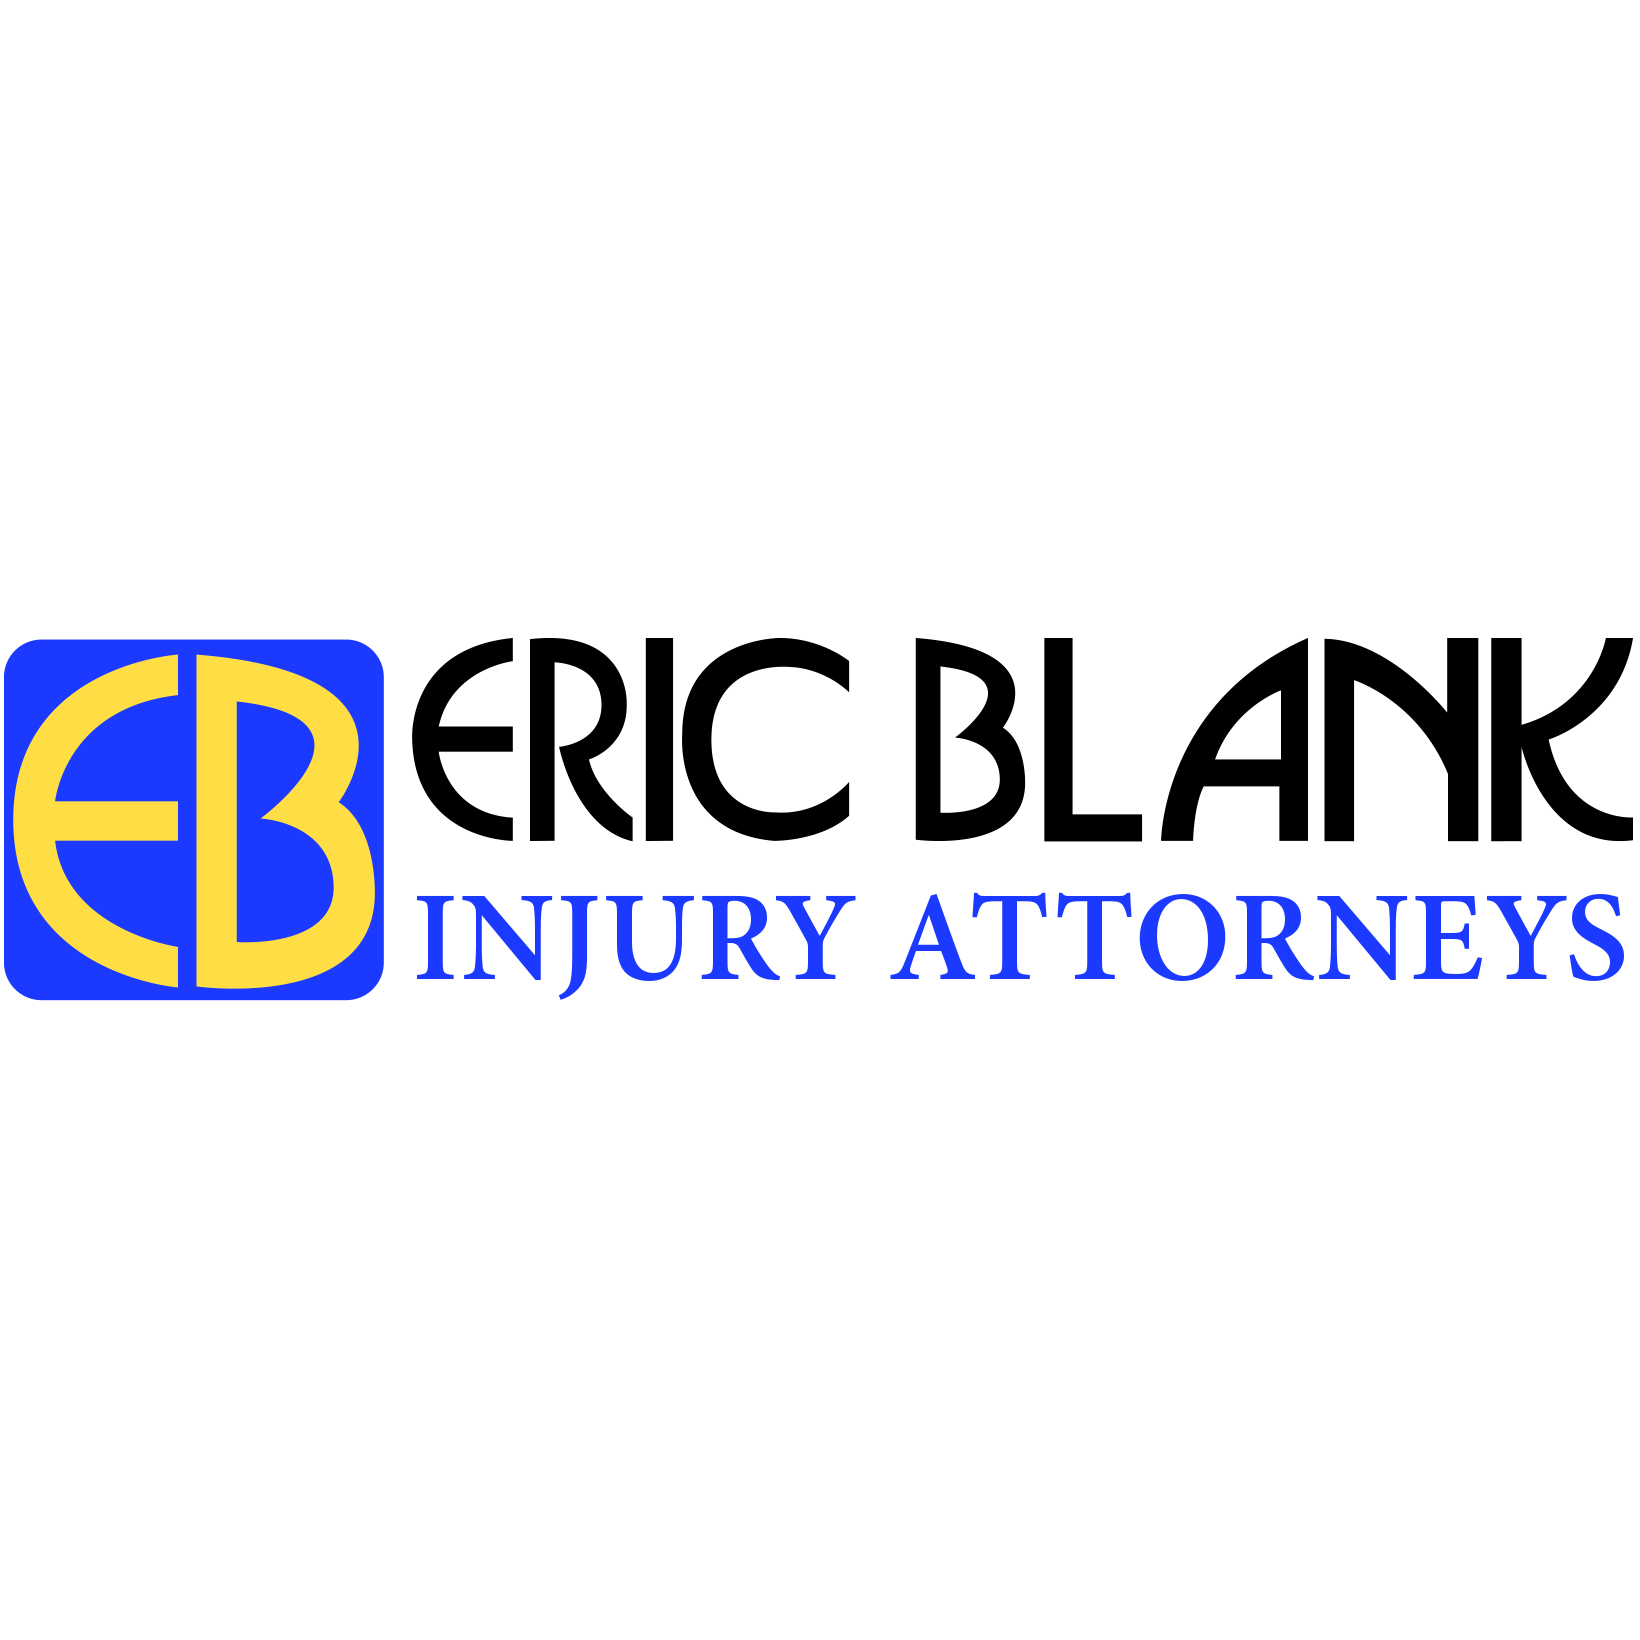 Eric Blank Injury Attorneys - Las Vegas, NV 89117 - (702)213-9343 | ShowMeLocal.com